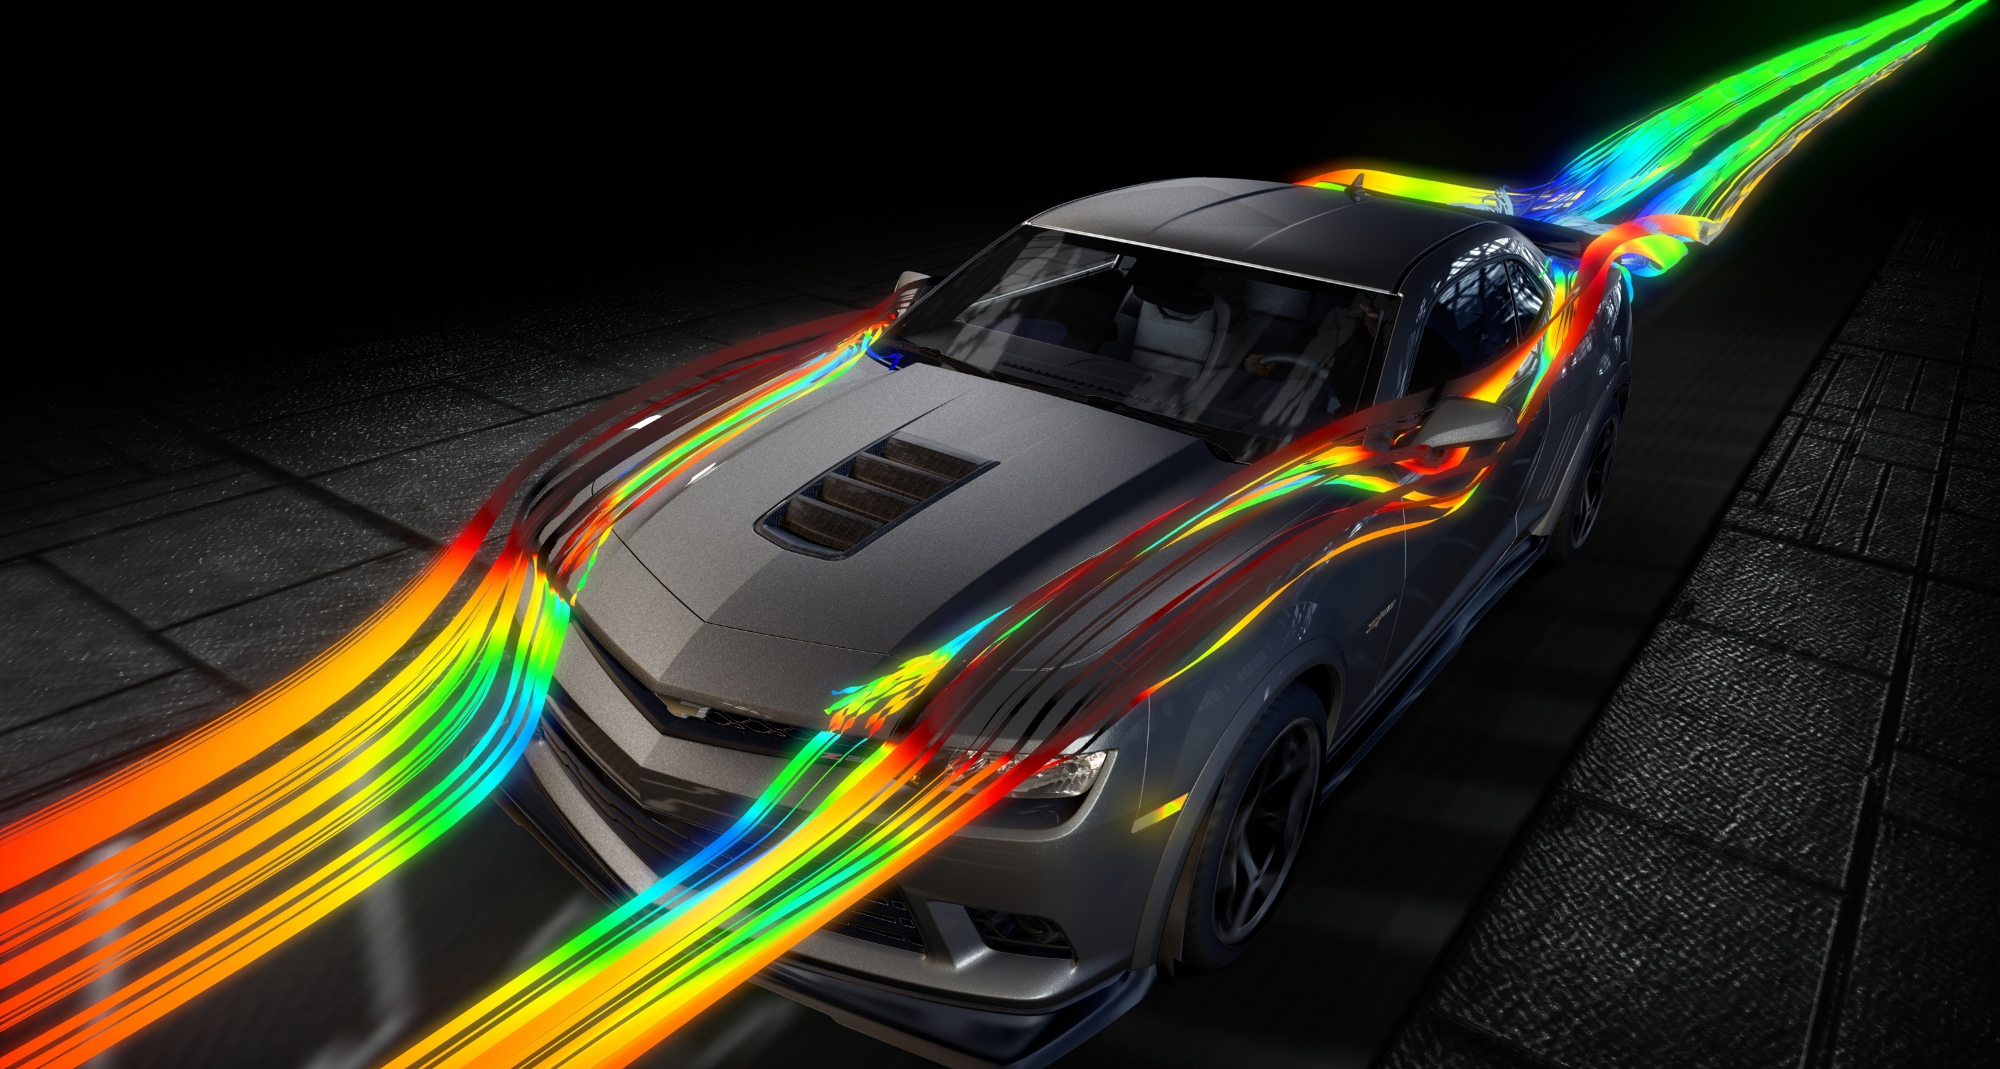 2014 Chevrolet Camaro Z 28 Aerodynamics Explained